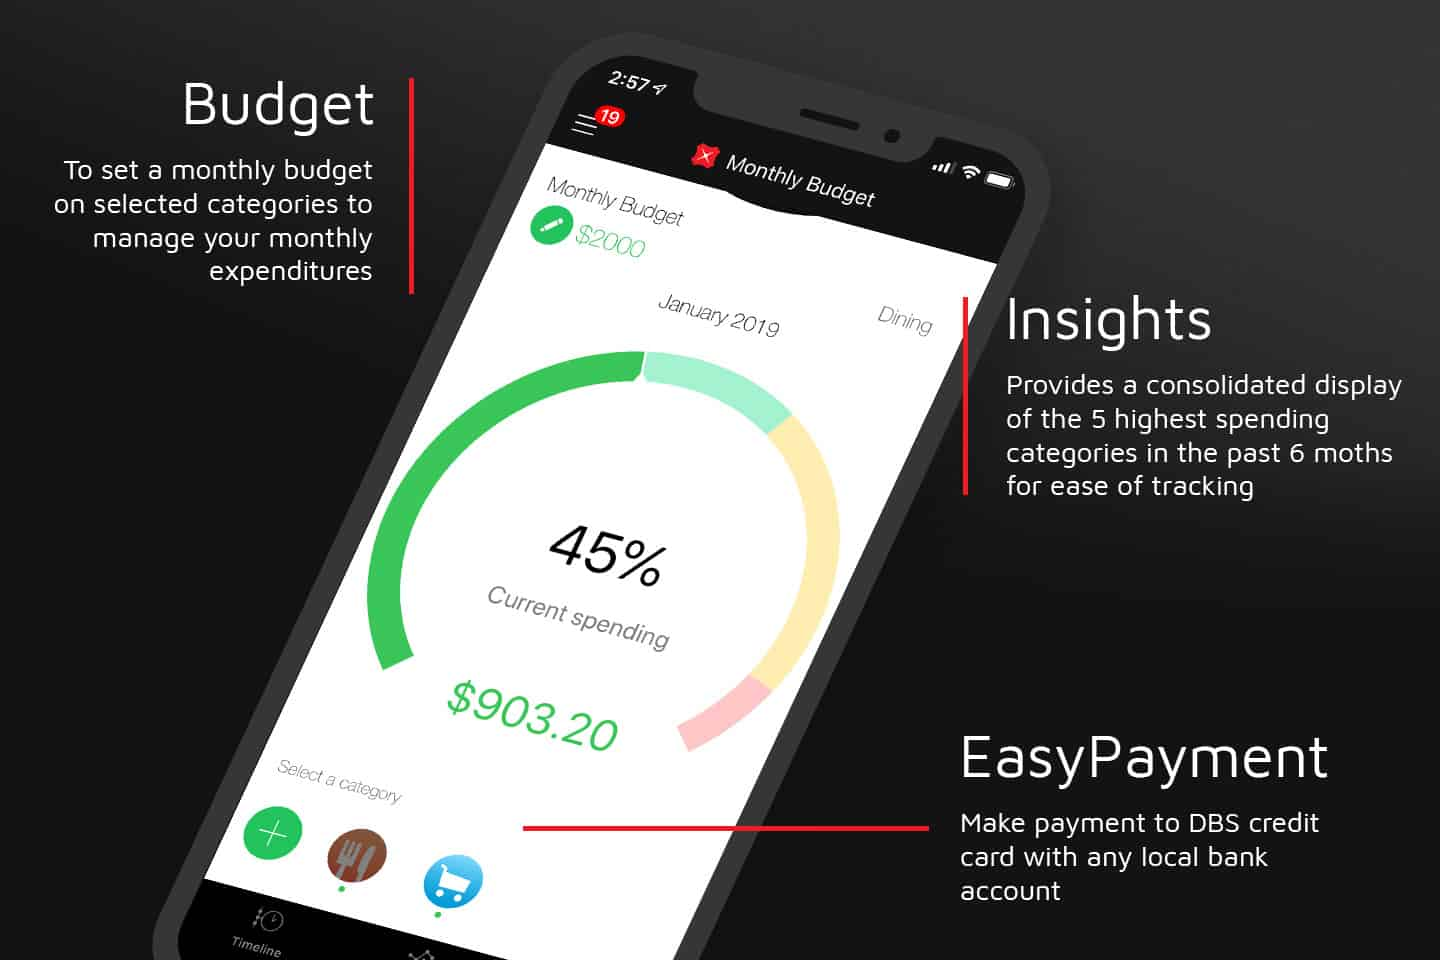 Manage your budget and spending with DBS Omni App